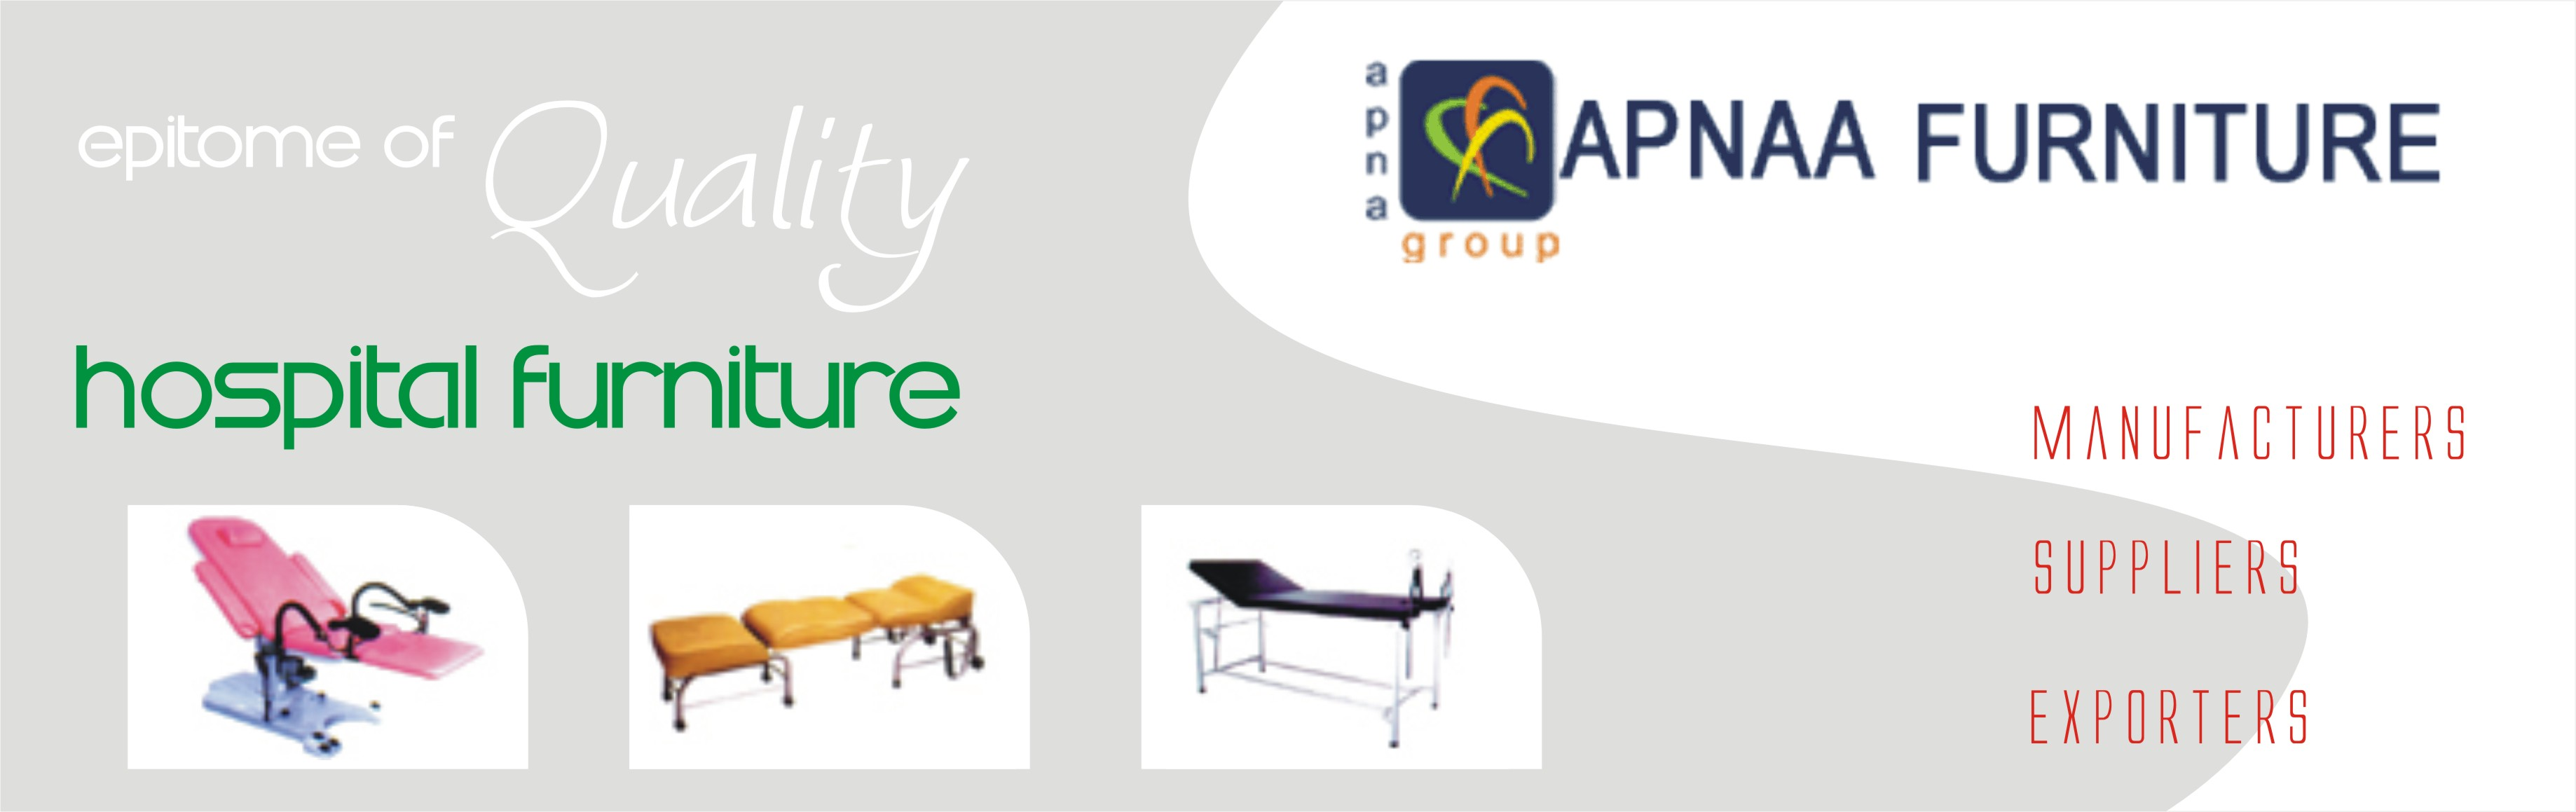 Medical and Hospital Furniture Manufacturers